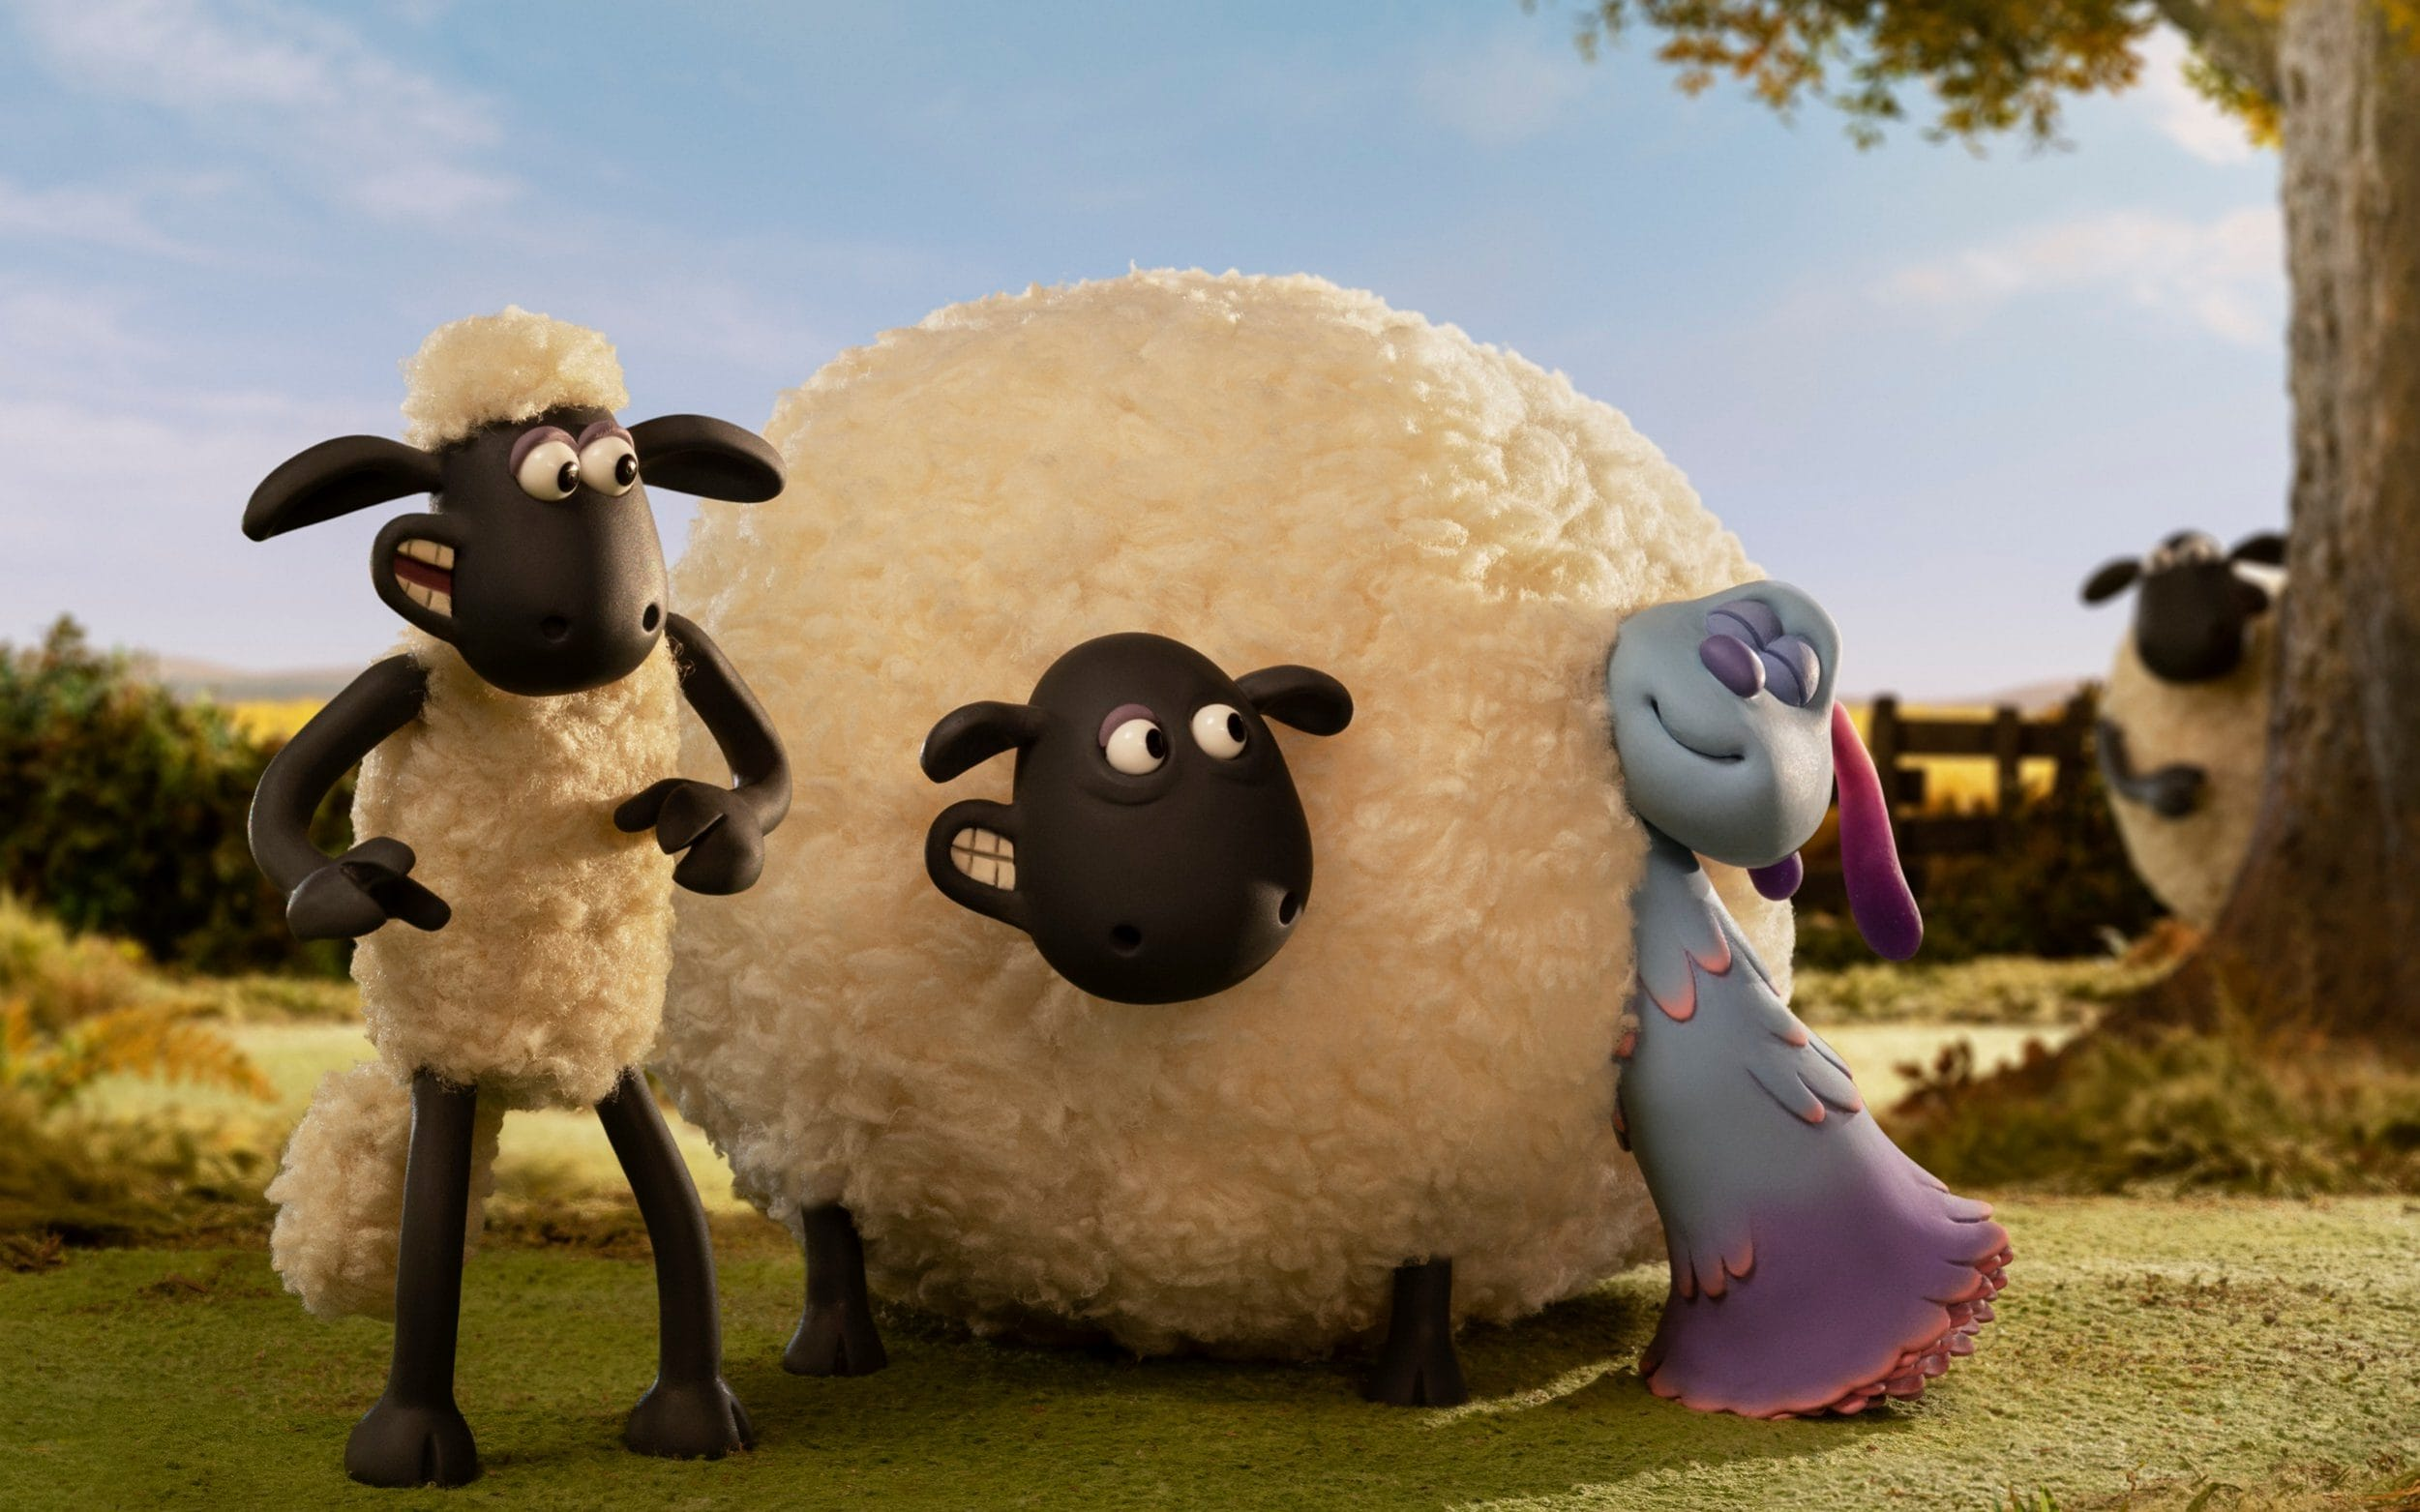 a-shaun-the-sheep-movie-farmageddon-review-an-ingenious-uproarious-reminder-of-what-makes-britain-great.jpg